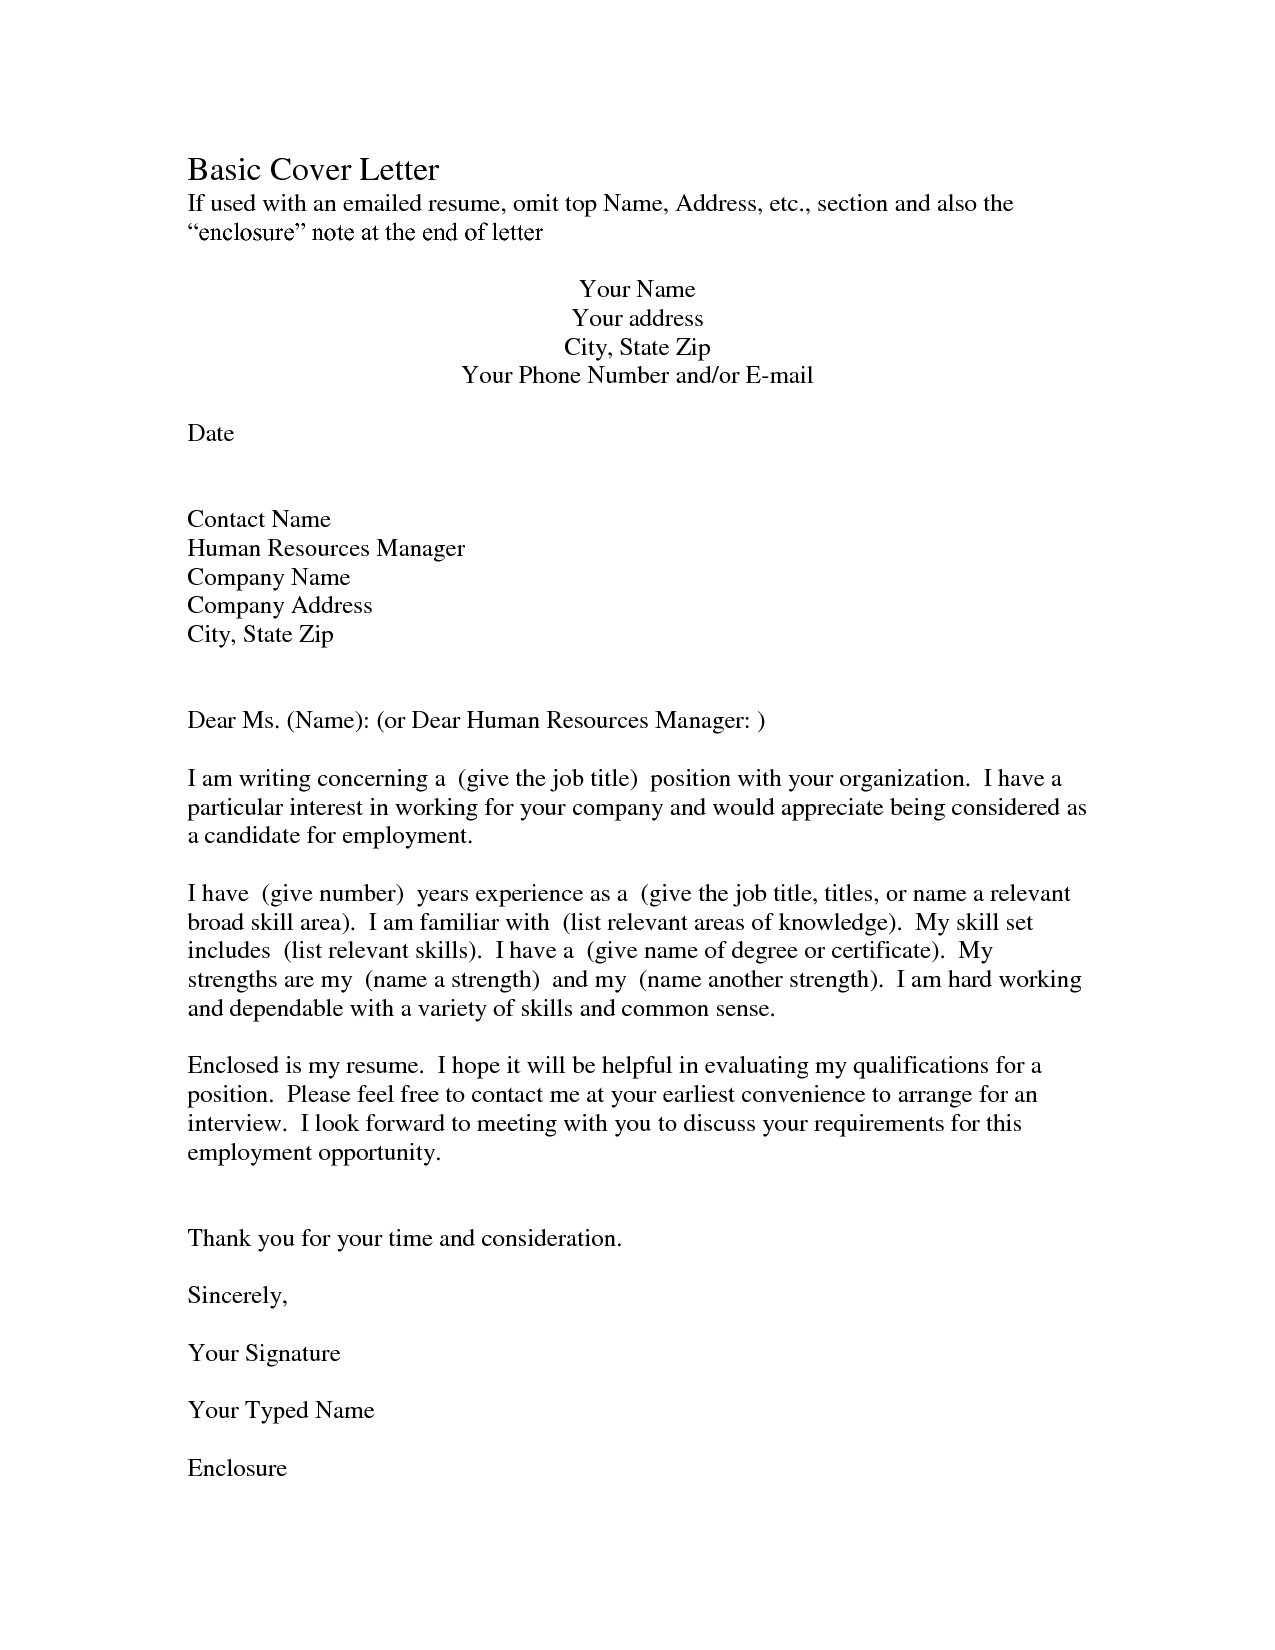 Relocation Cover Letter Template Free - This Cover Letter Sample Shows How A Resumes for Teachers Can Help